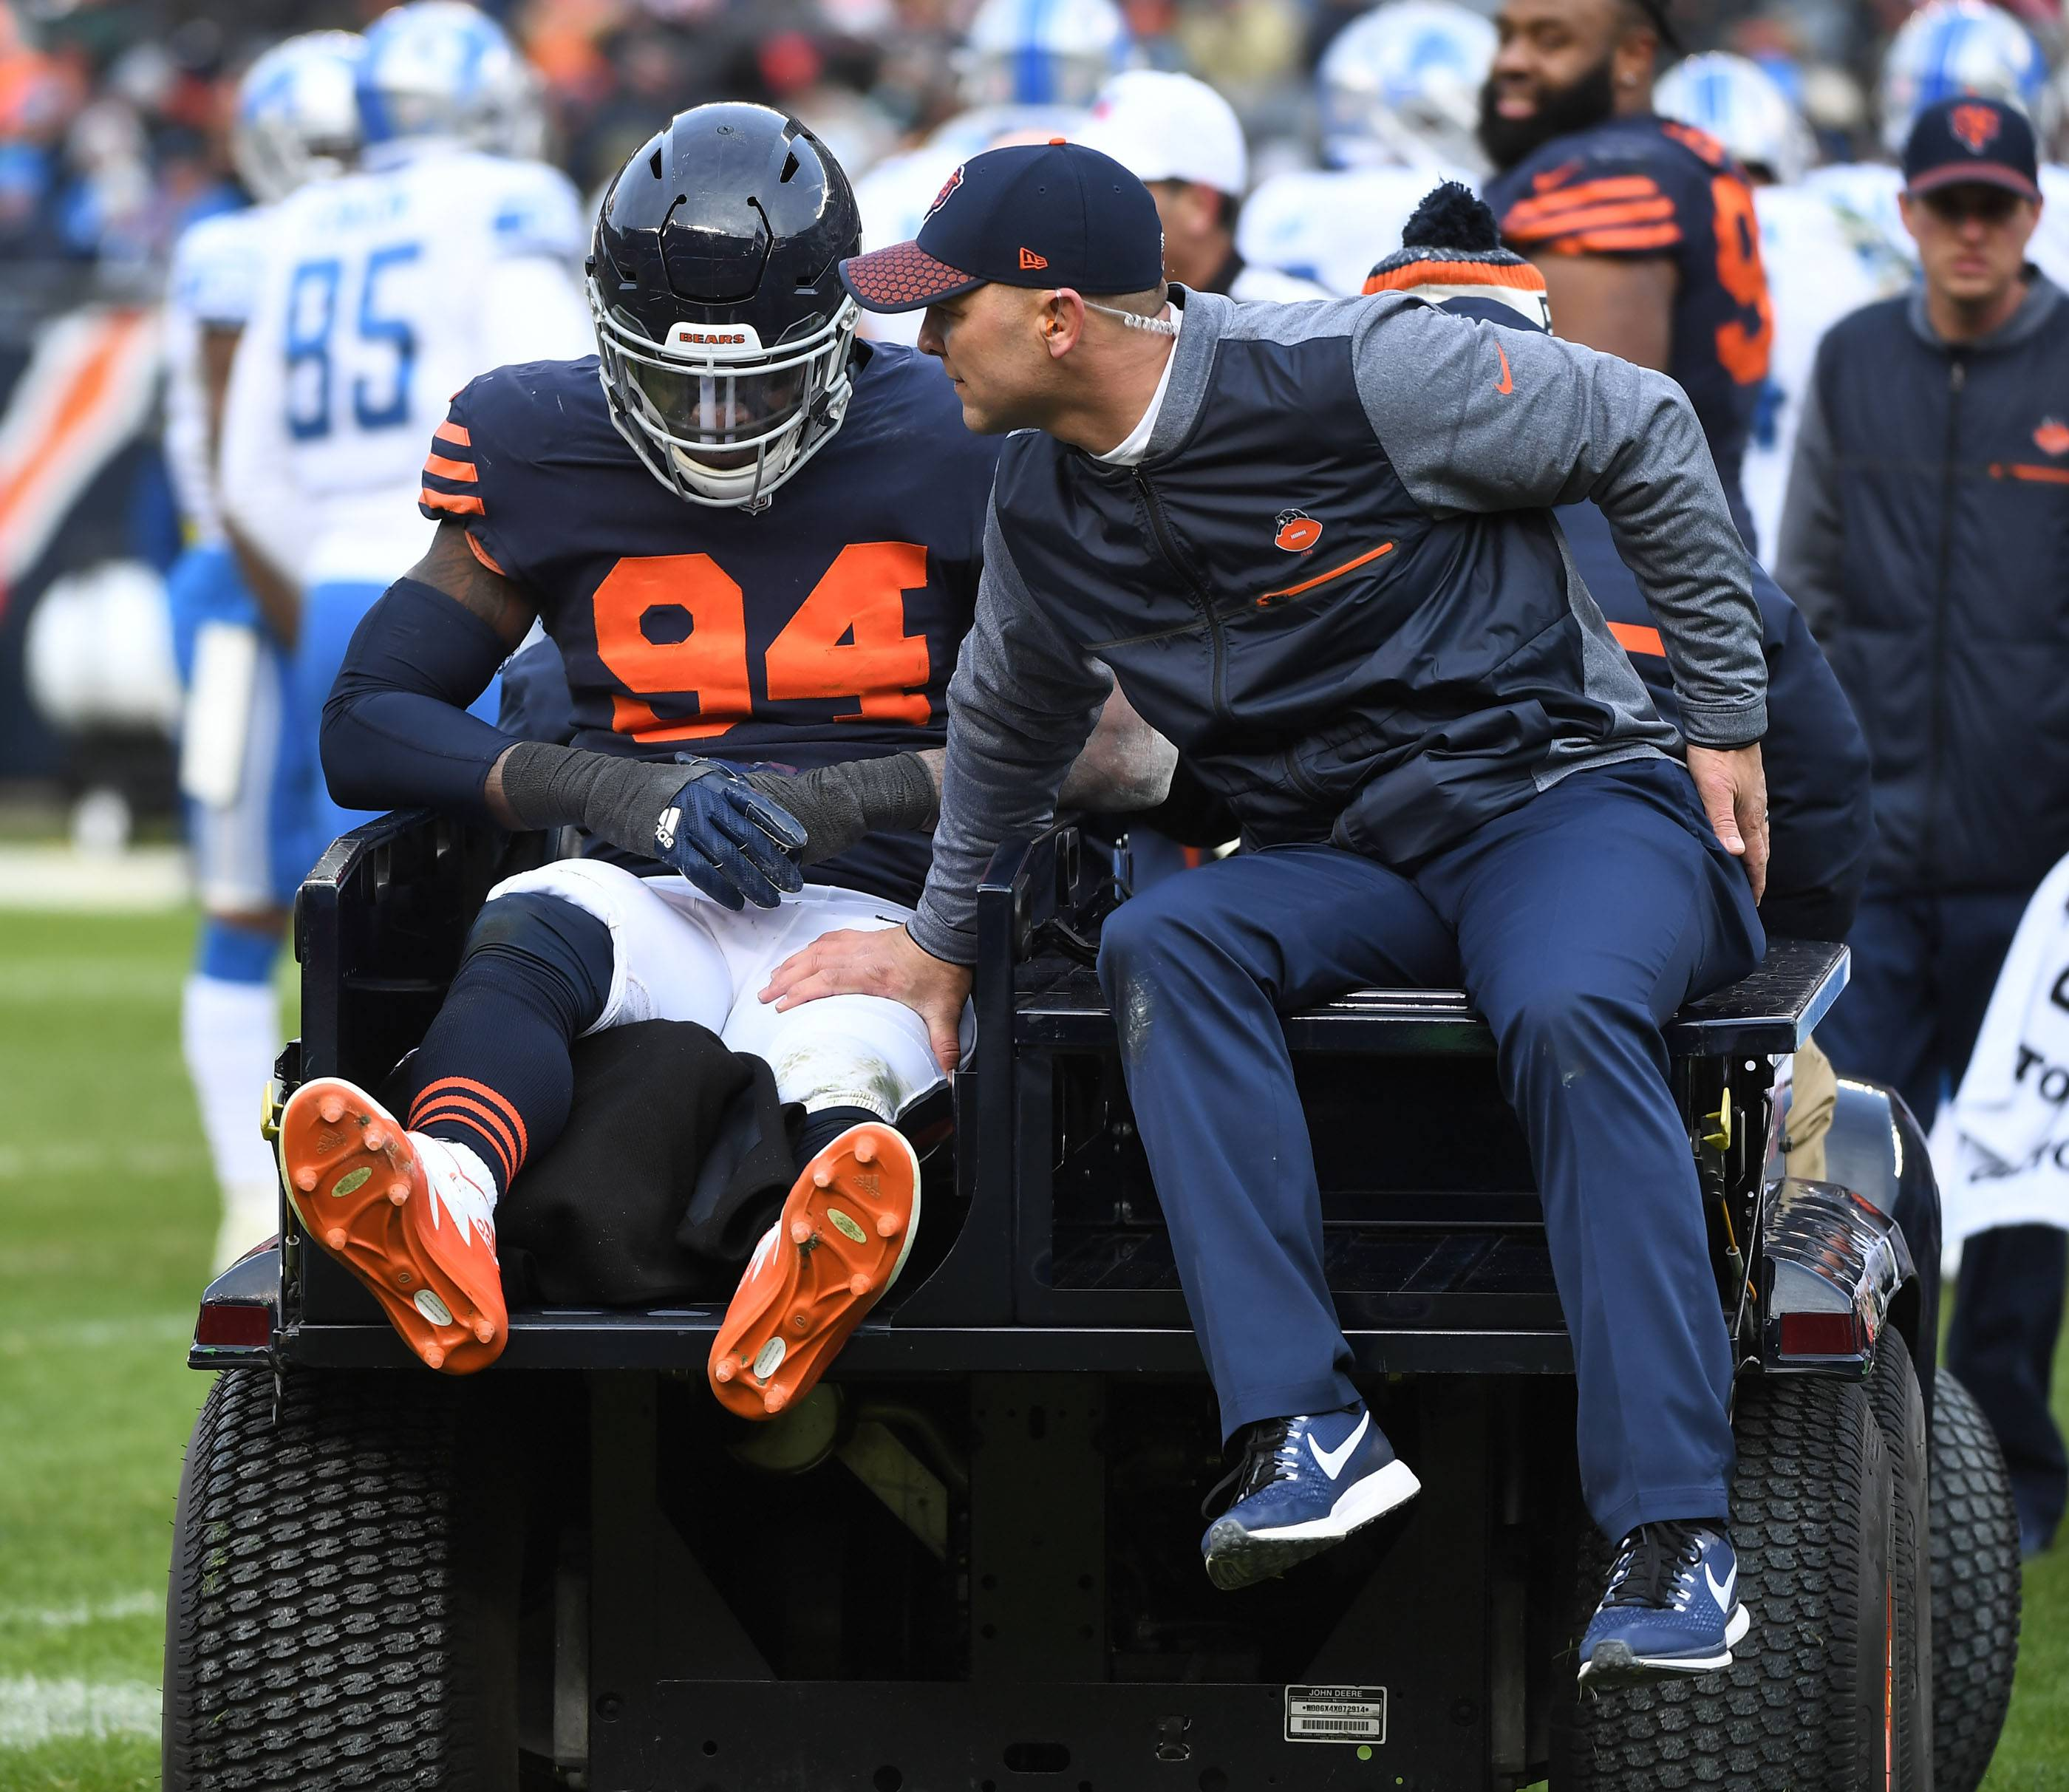 Depleted Chicago Bears defense shadow of its former self